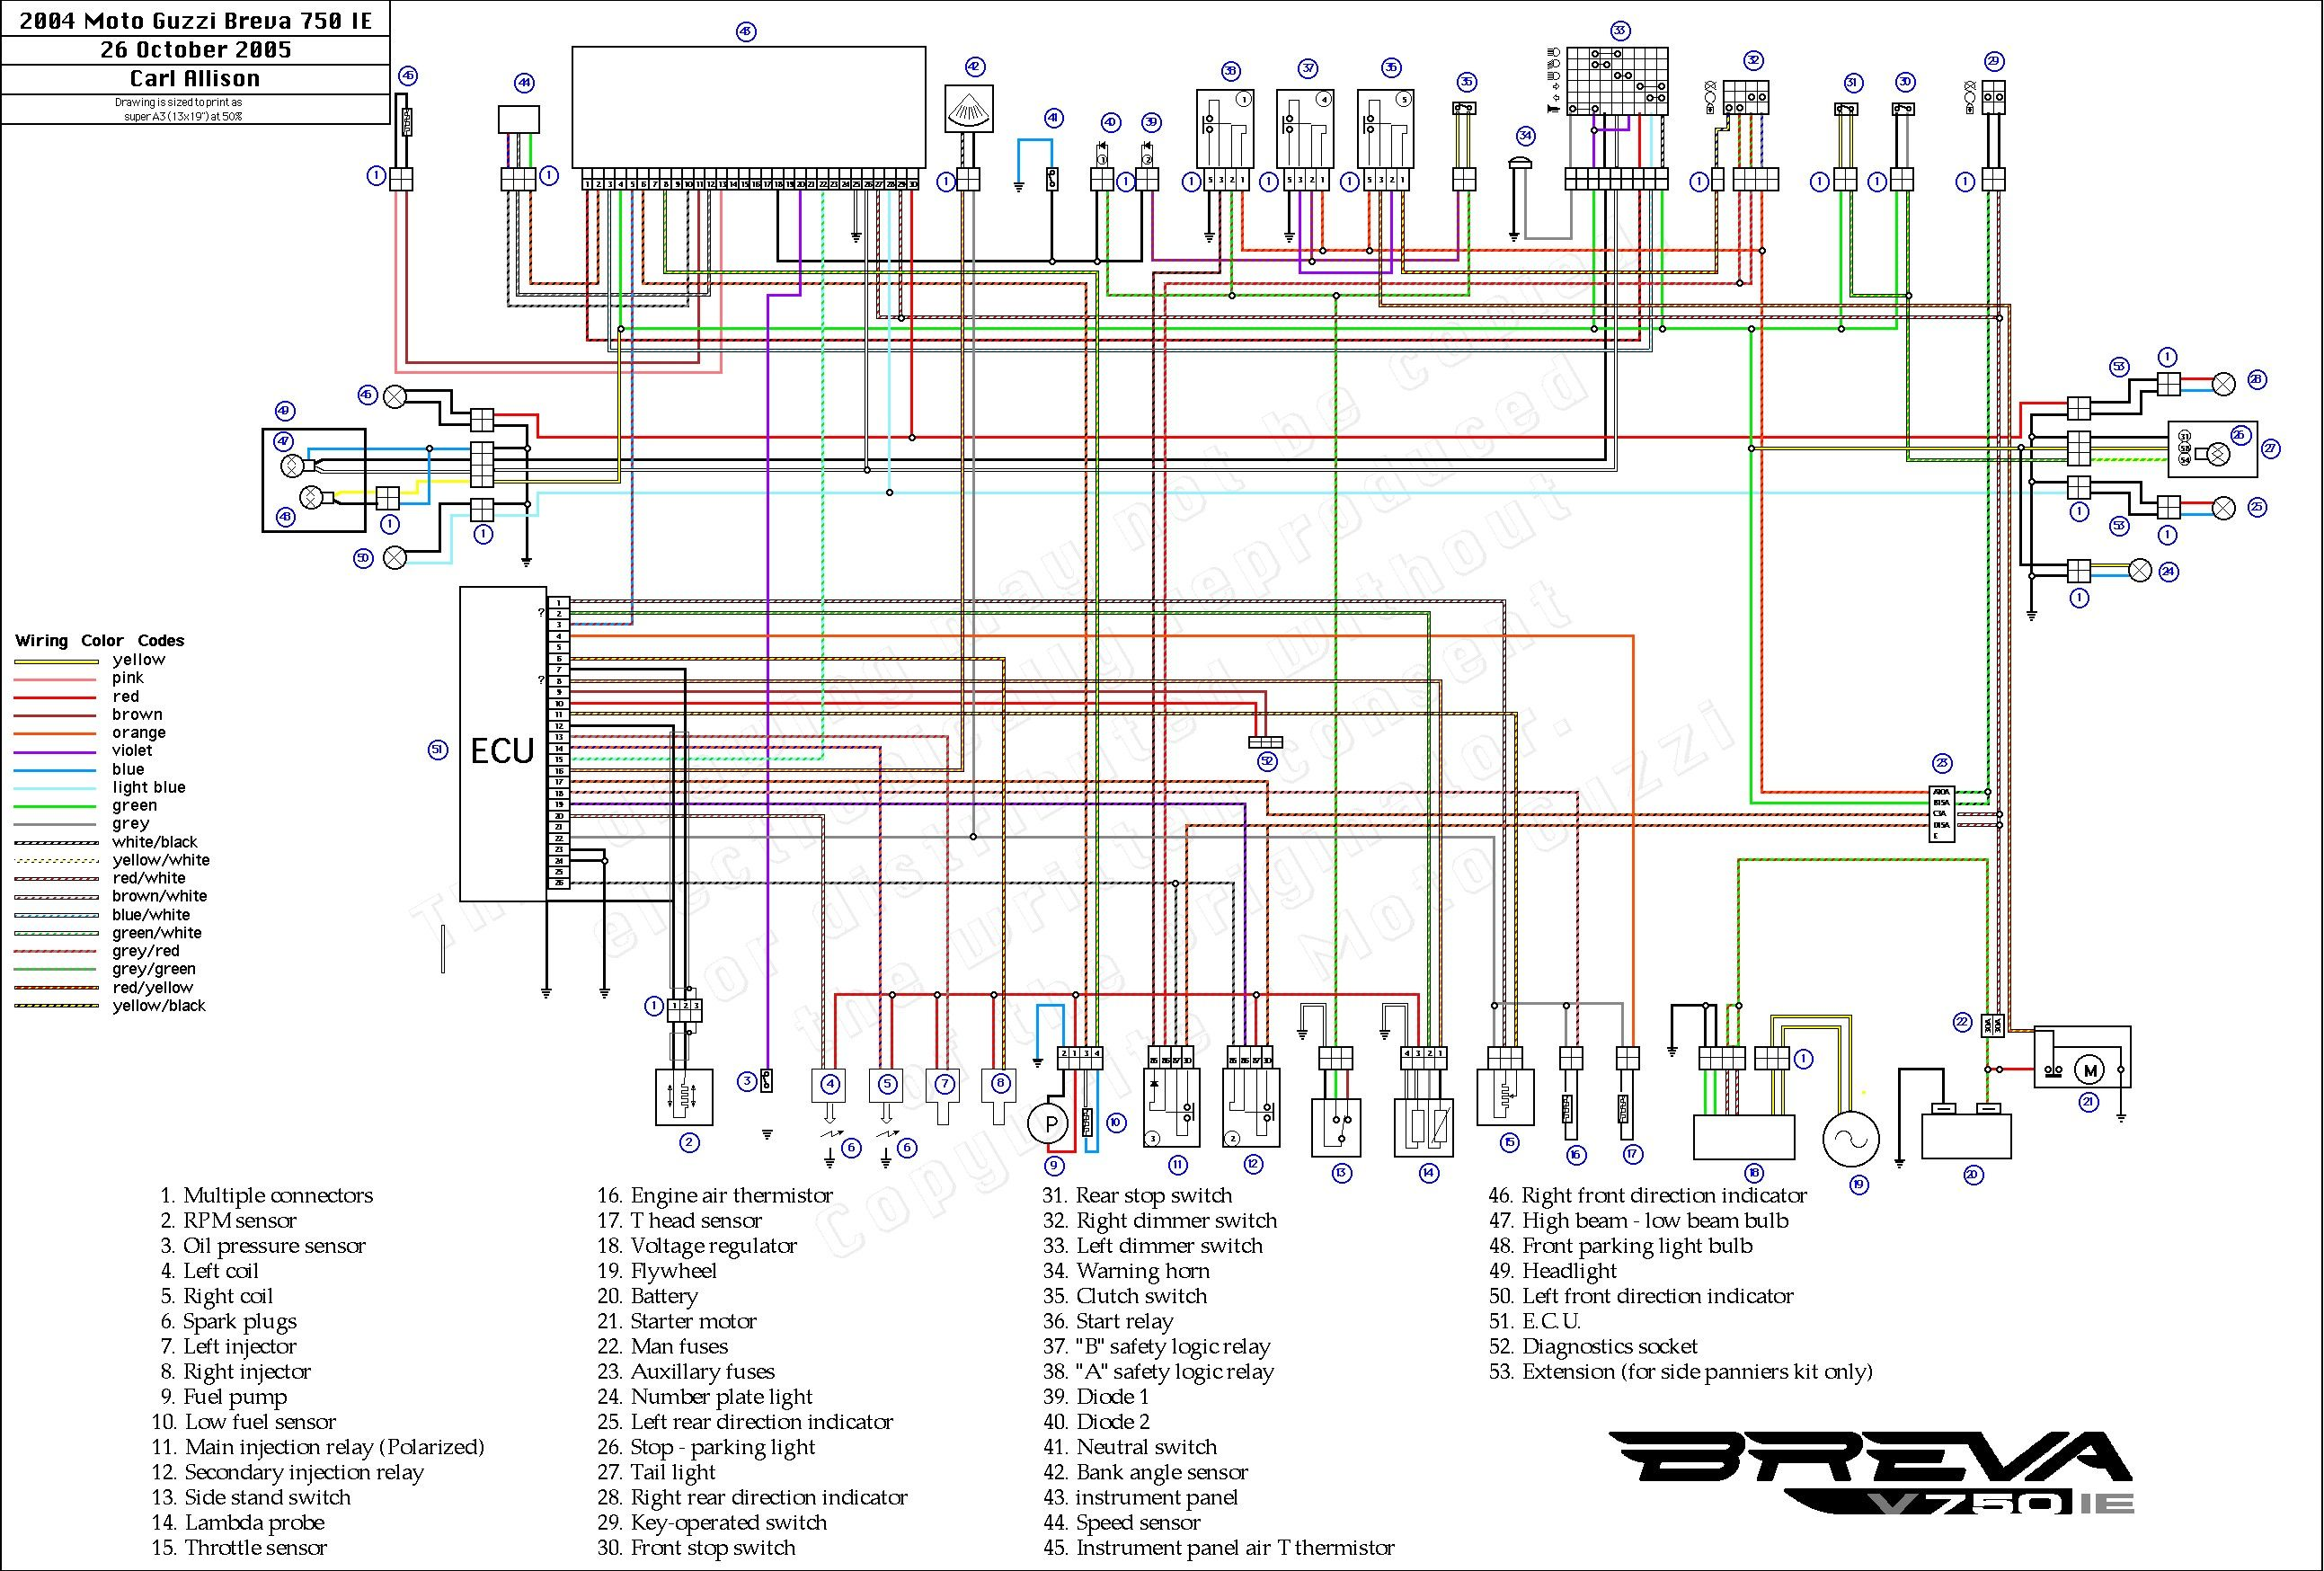 2007 Dodge 5 7 1500 Wiring Ignition Diagram Yahoo Image Search Results Dodge Ram 1500 Dodge Ram Dodge